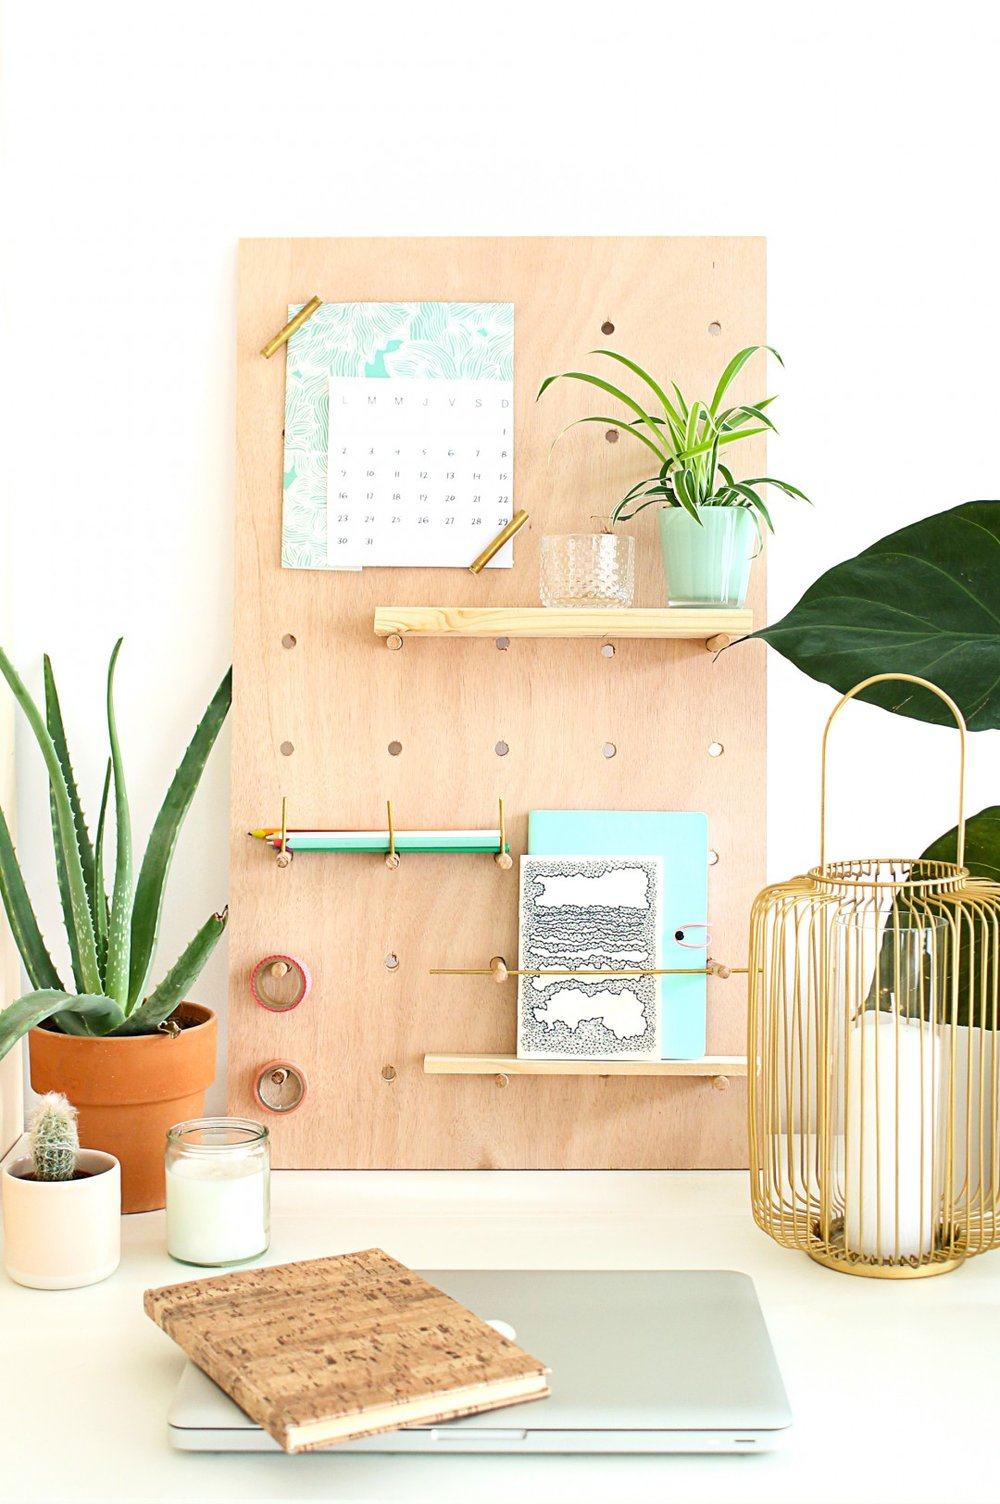 DIY PEGBOARD FOR OFFICE IN PLYWOOD from mademoiselle claudine